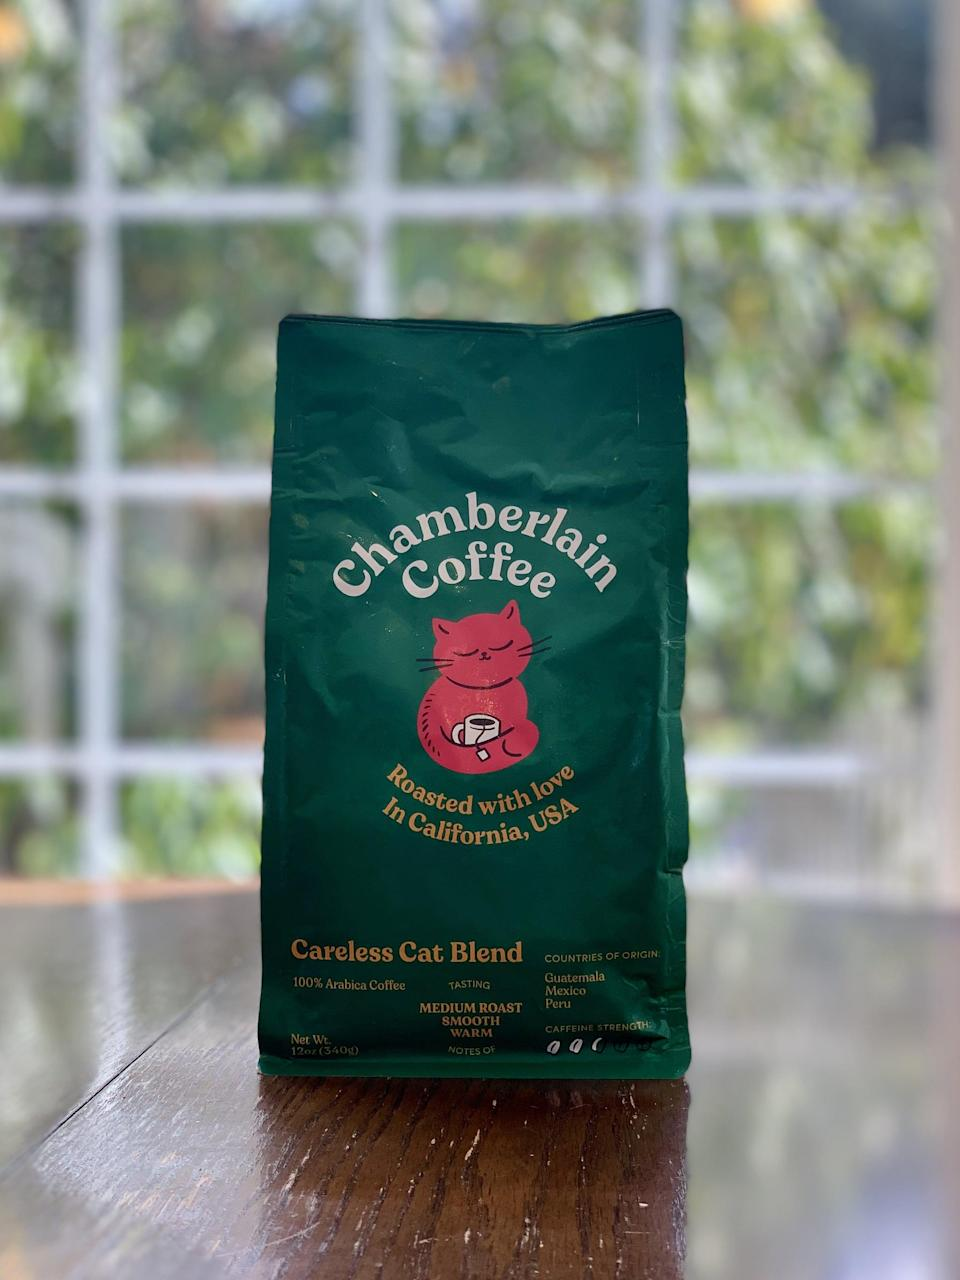 "<p><strong>Basic info:</strong> Medium roast described as ""smooth"" and ""warm.""</p> <p>The <a href=""https://chamberlaincoffee.com/products/careless-cat-blend"" class=""link rapid-noclick-resp"" rel=""nofollow noopener"" target=""_blank"" data-ylk=""slk:Careless Cat Blend"">Careless Cat Blend</a> is the coffee for tea-lovers. Spiced and aromatic, it nearly reminded me of a chai latte. My first impression is in line with the tasting notes, as described by the brand: ""toasted almonds, semi-sweet chocolate, butterscotch candy, and raisin.""</p>"